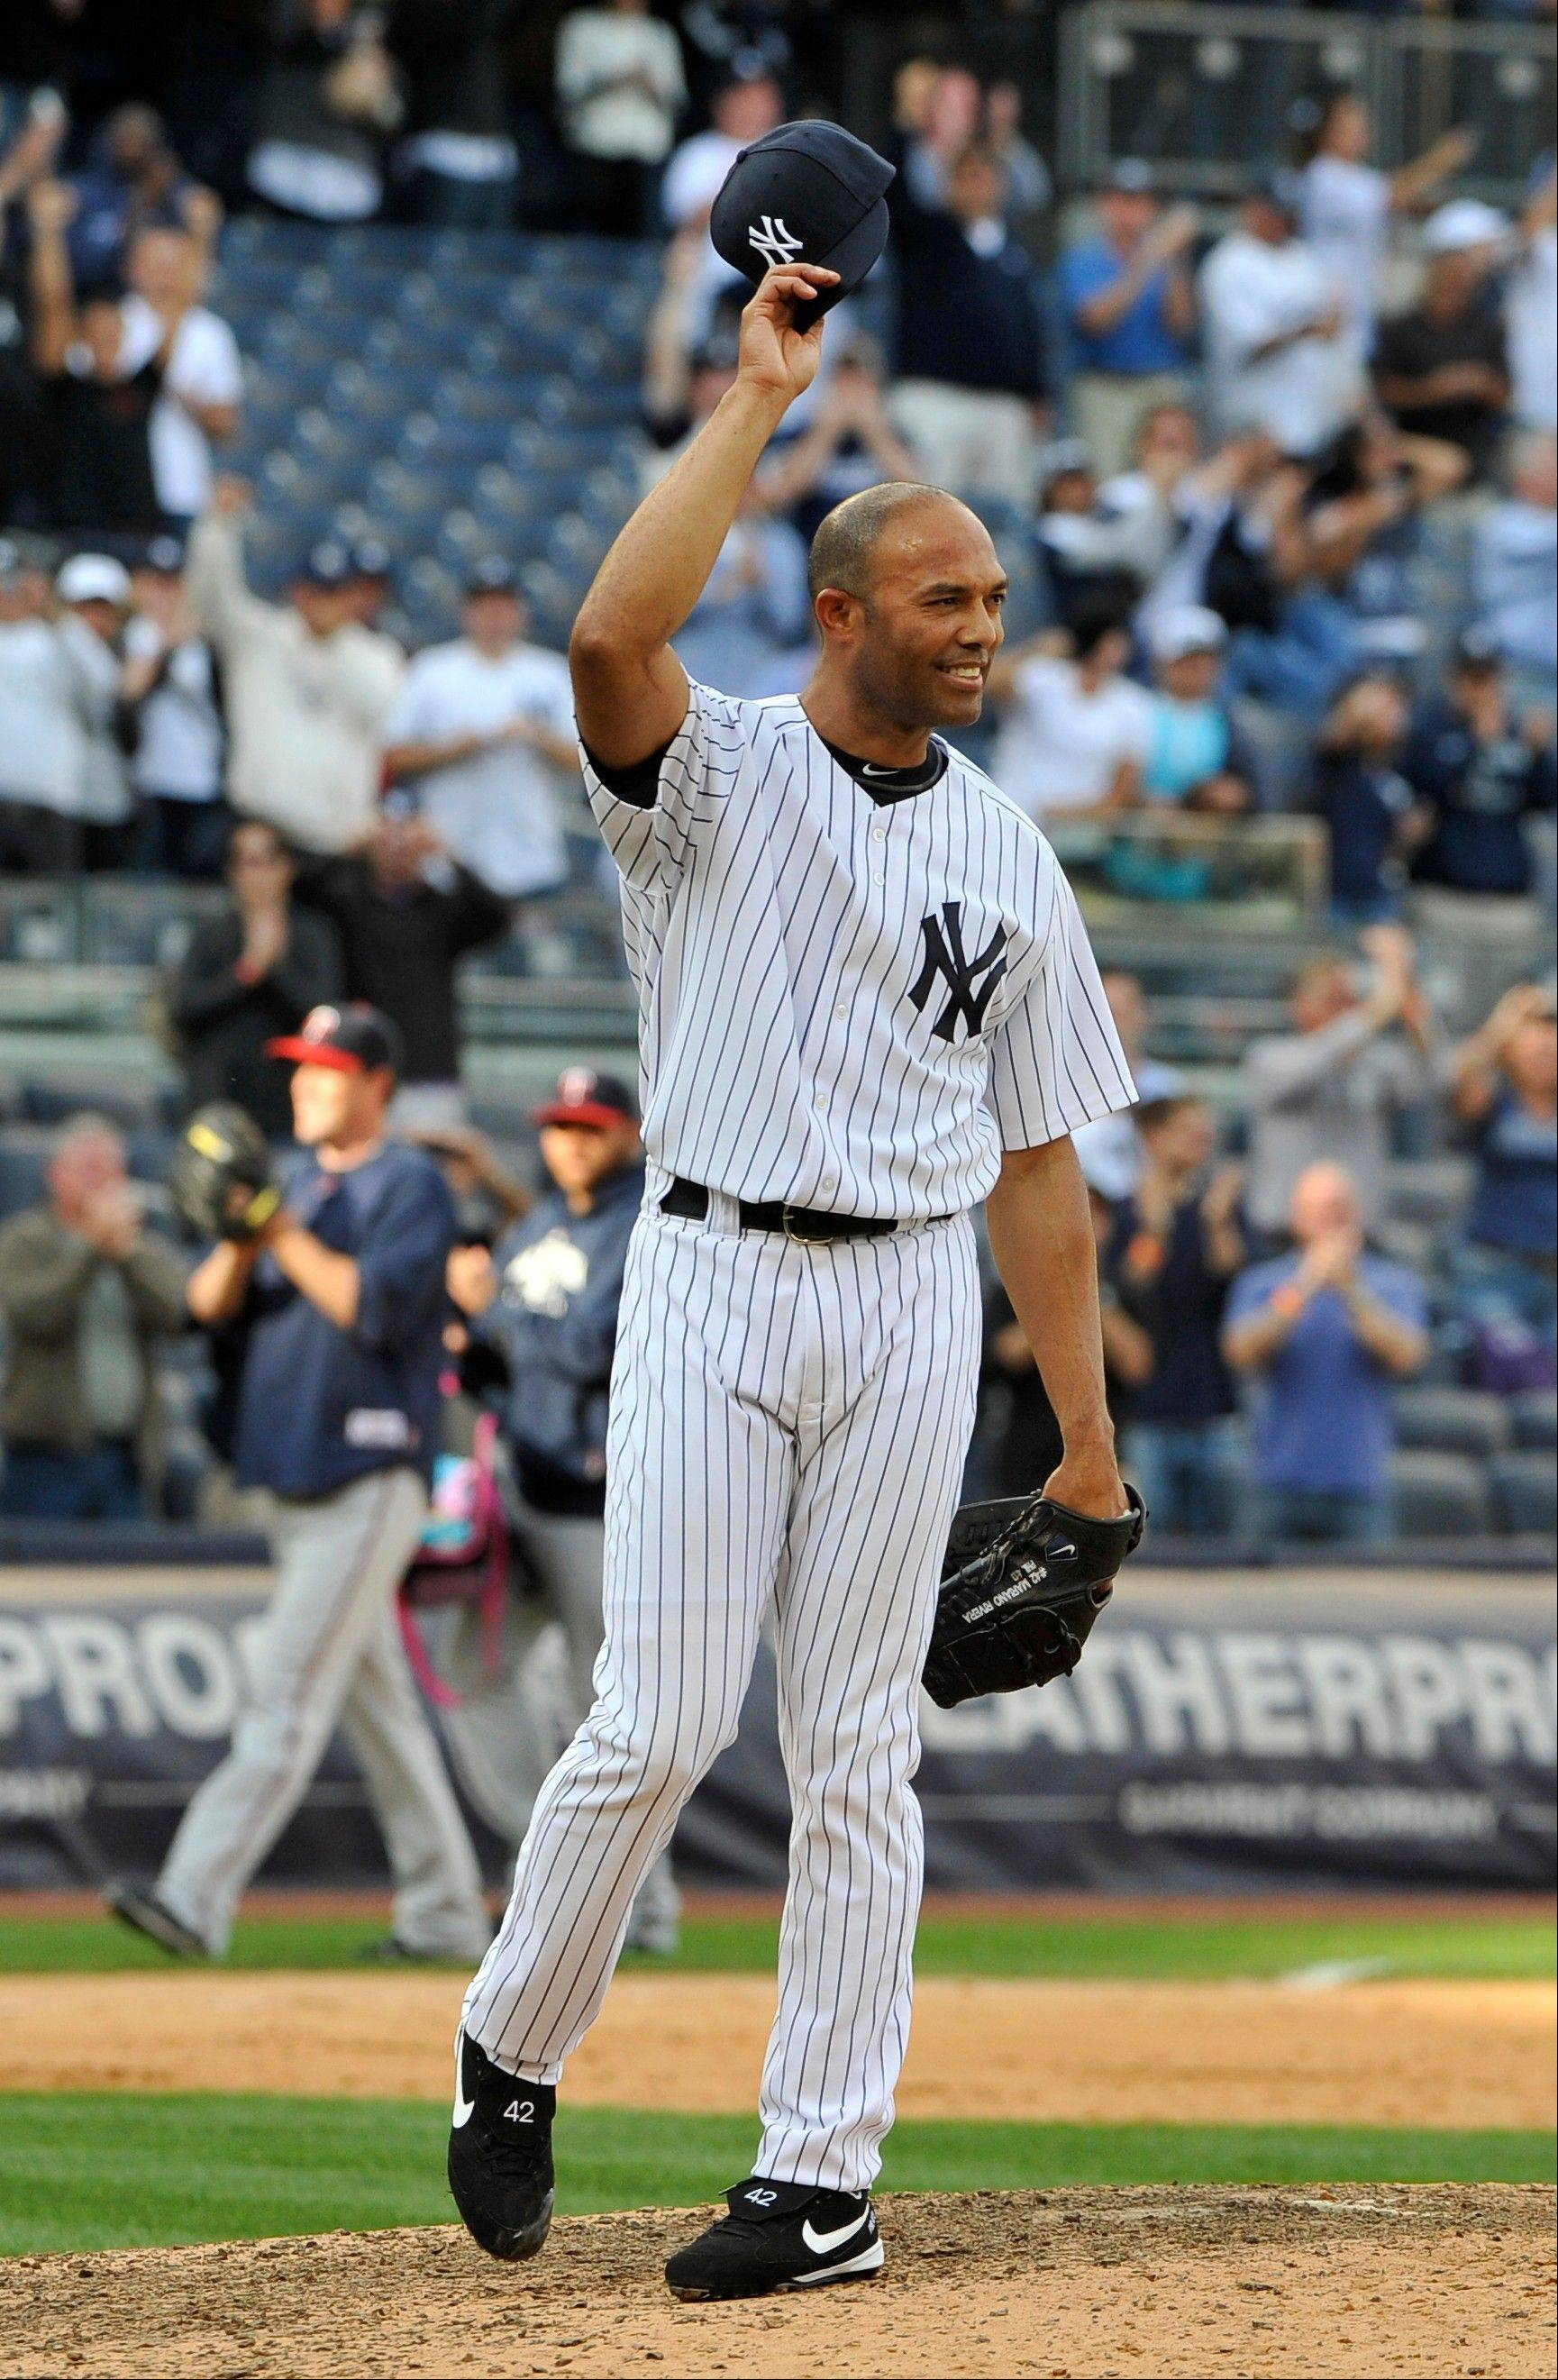 FILE - In this Sept. 19, 2011 file photo, New York Yankees' Mariano Rivera tips his cap to acknowledge the cheers of the crowd after recording his 602nd save as the Yankees beat the Minnesota Twins 6-4 in a baseball game at Yankee Stadium in New York. A person familiar with the decision says that Rivera plans to retire after the 2013 season. The person spoke to The Associated Press on Thursday, March 7, 2013, on condition of anonymity because there had been no official announcement.(AP Photo/Kathy Kmonicek, File)